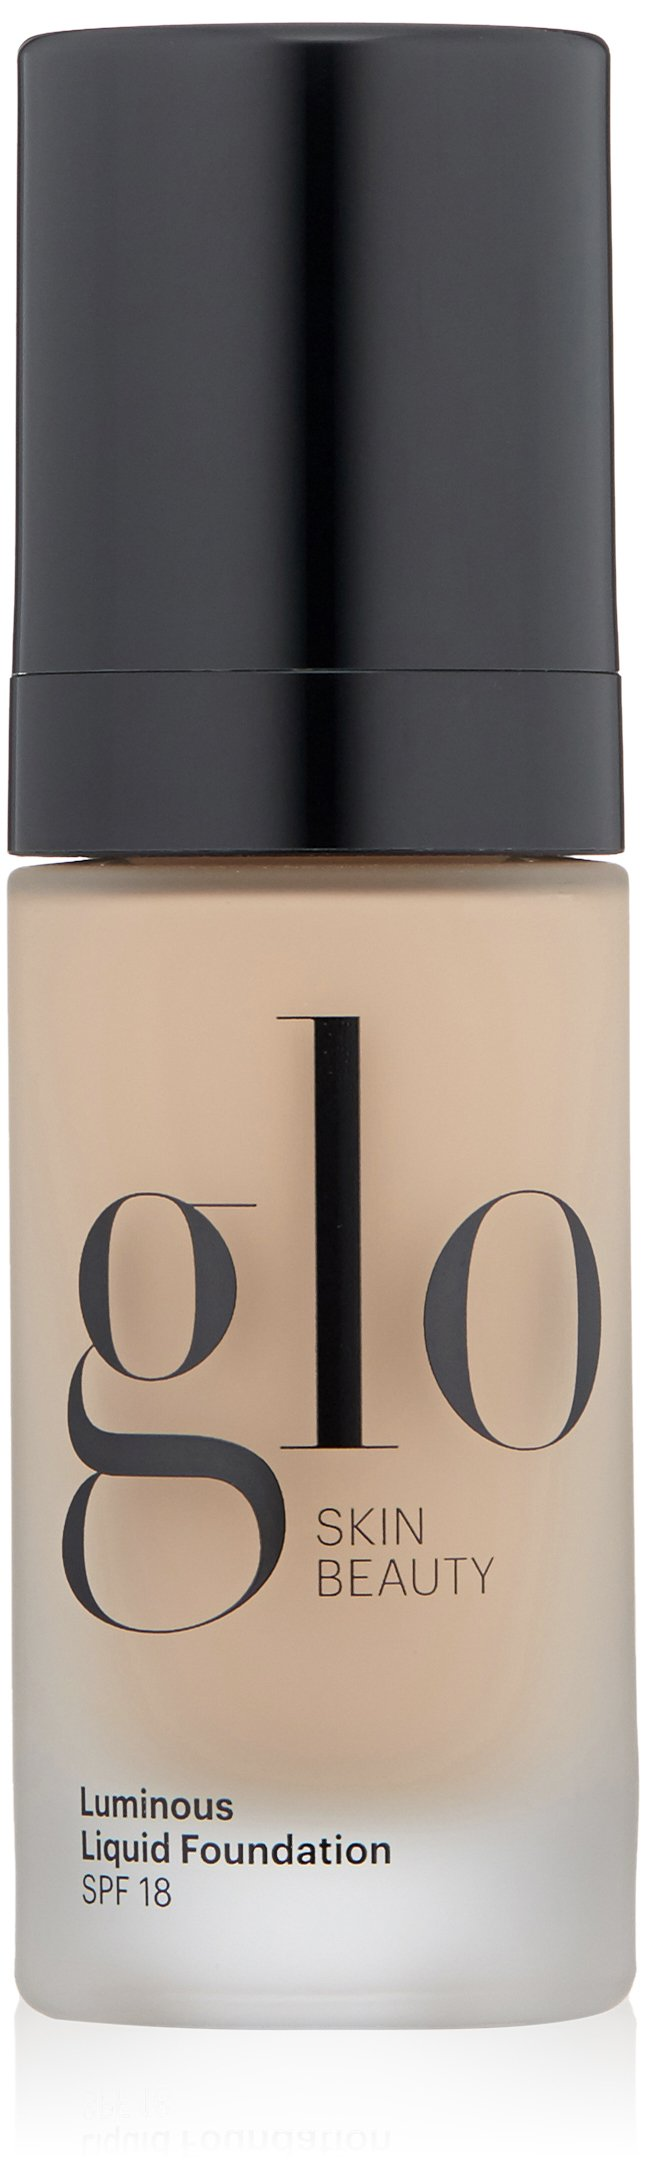 Glo Skin Beauty Luminous Liquid Foundation SPF 18 in Naturelle | 10 Shades | Sheer Coverage, Dewy Finish | 1 fl. Oz.